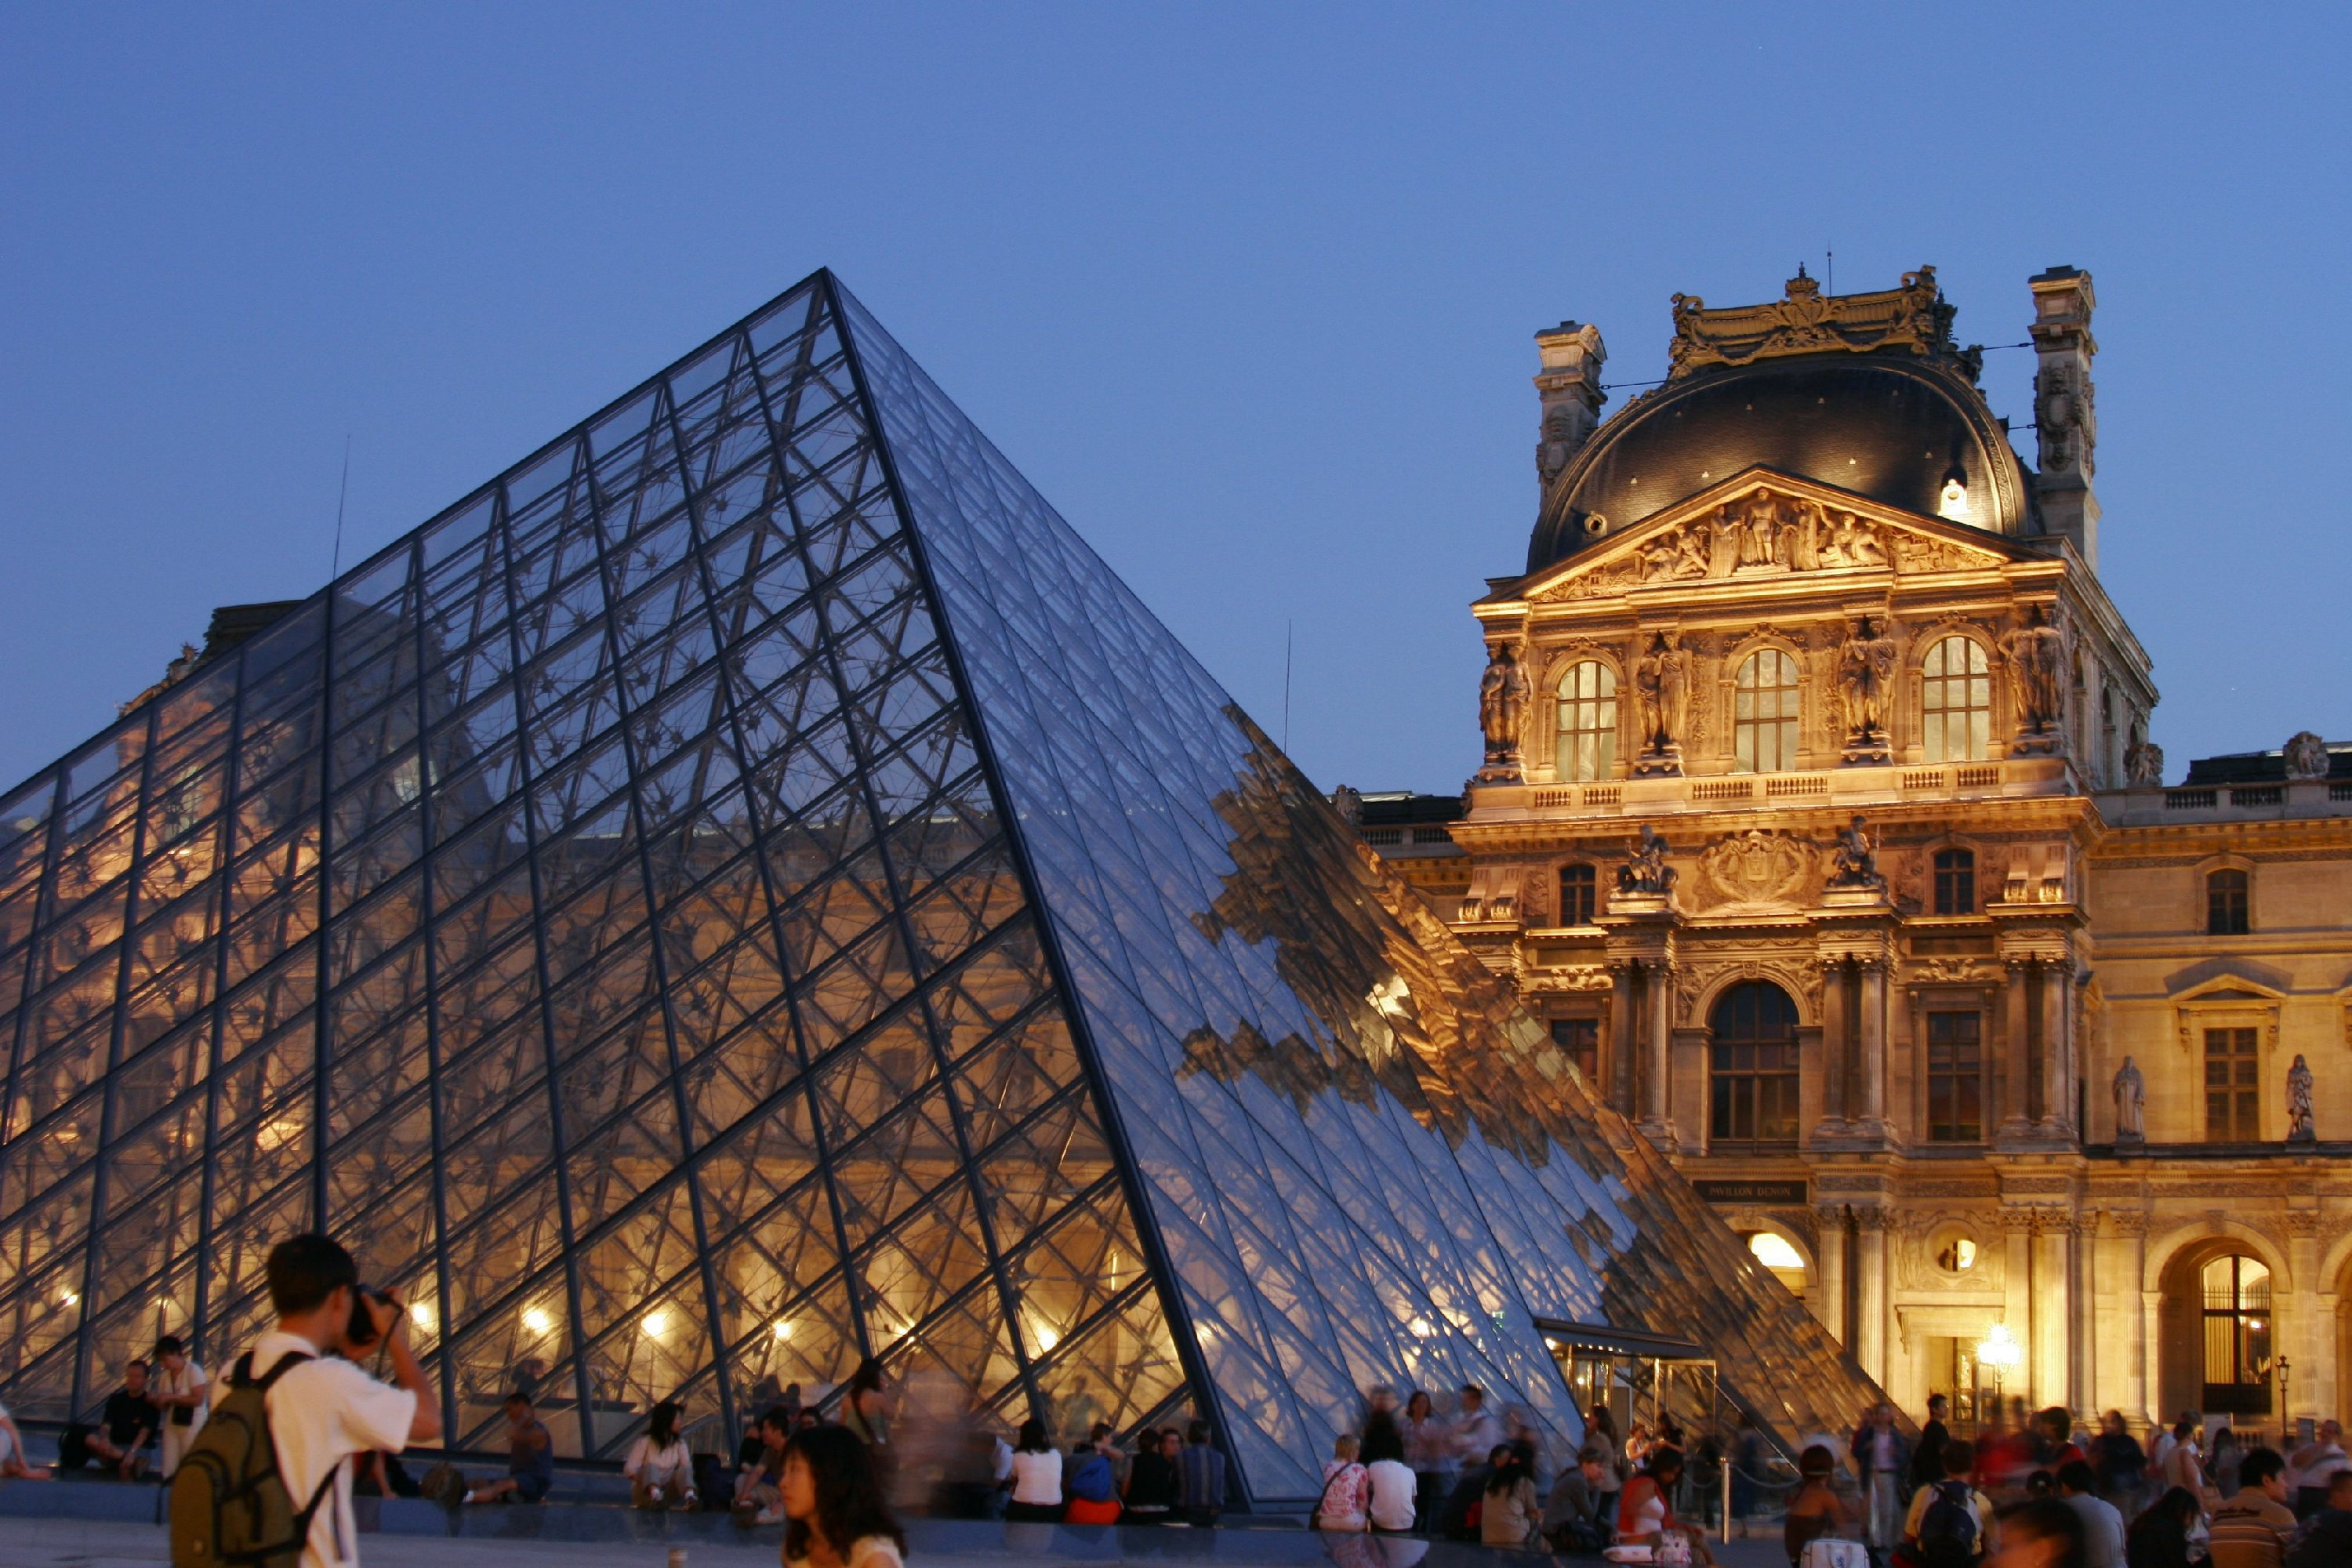 50 best paris attractions to visit right now